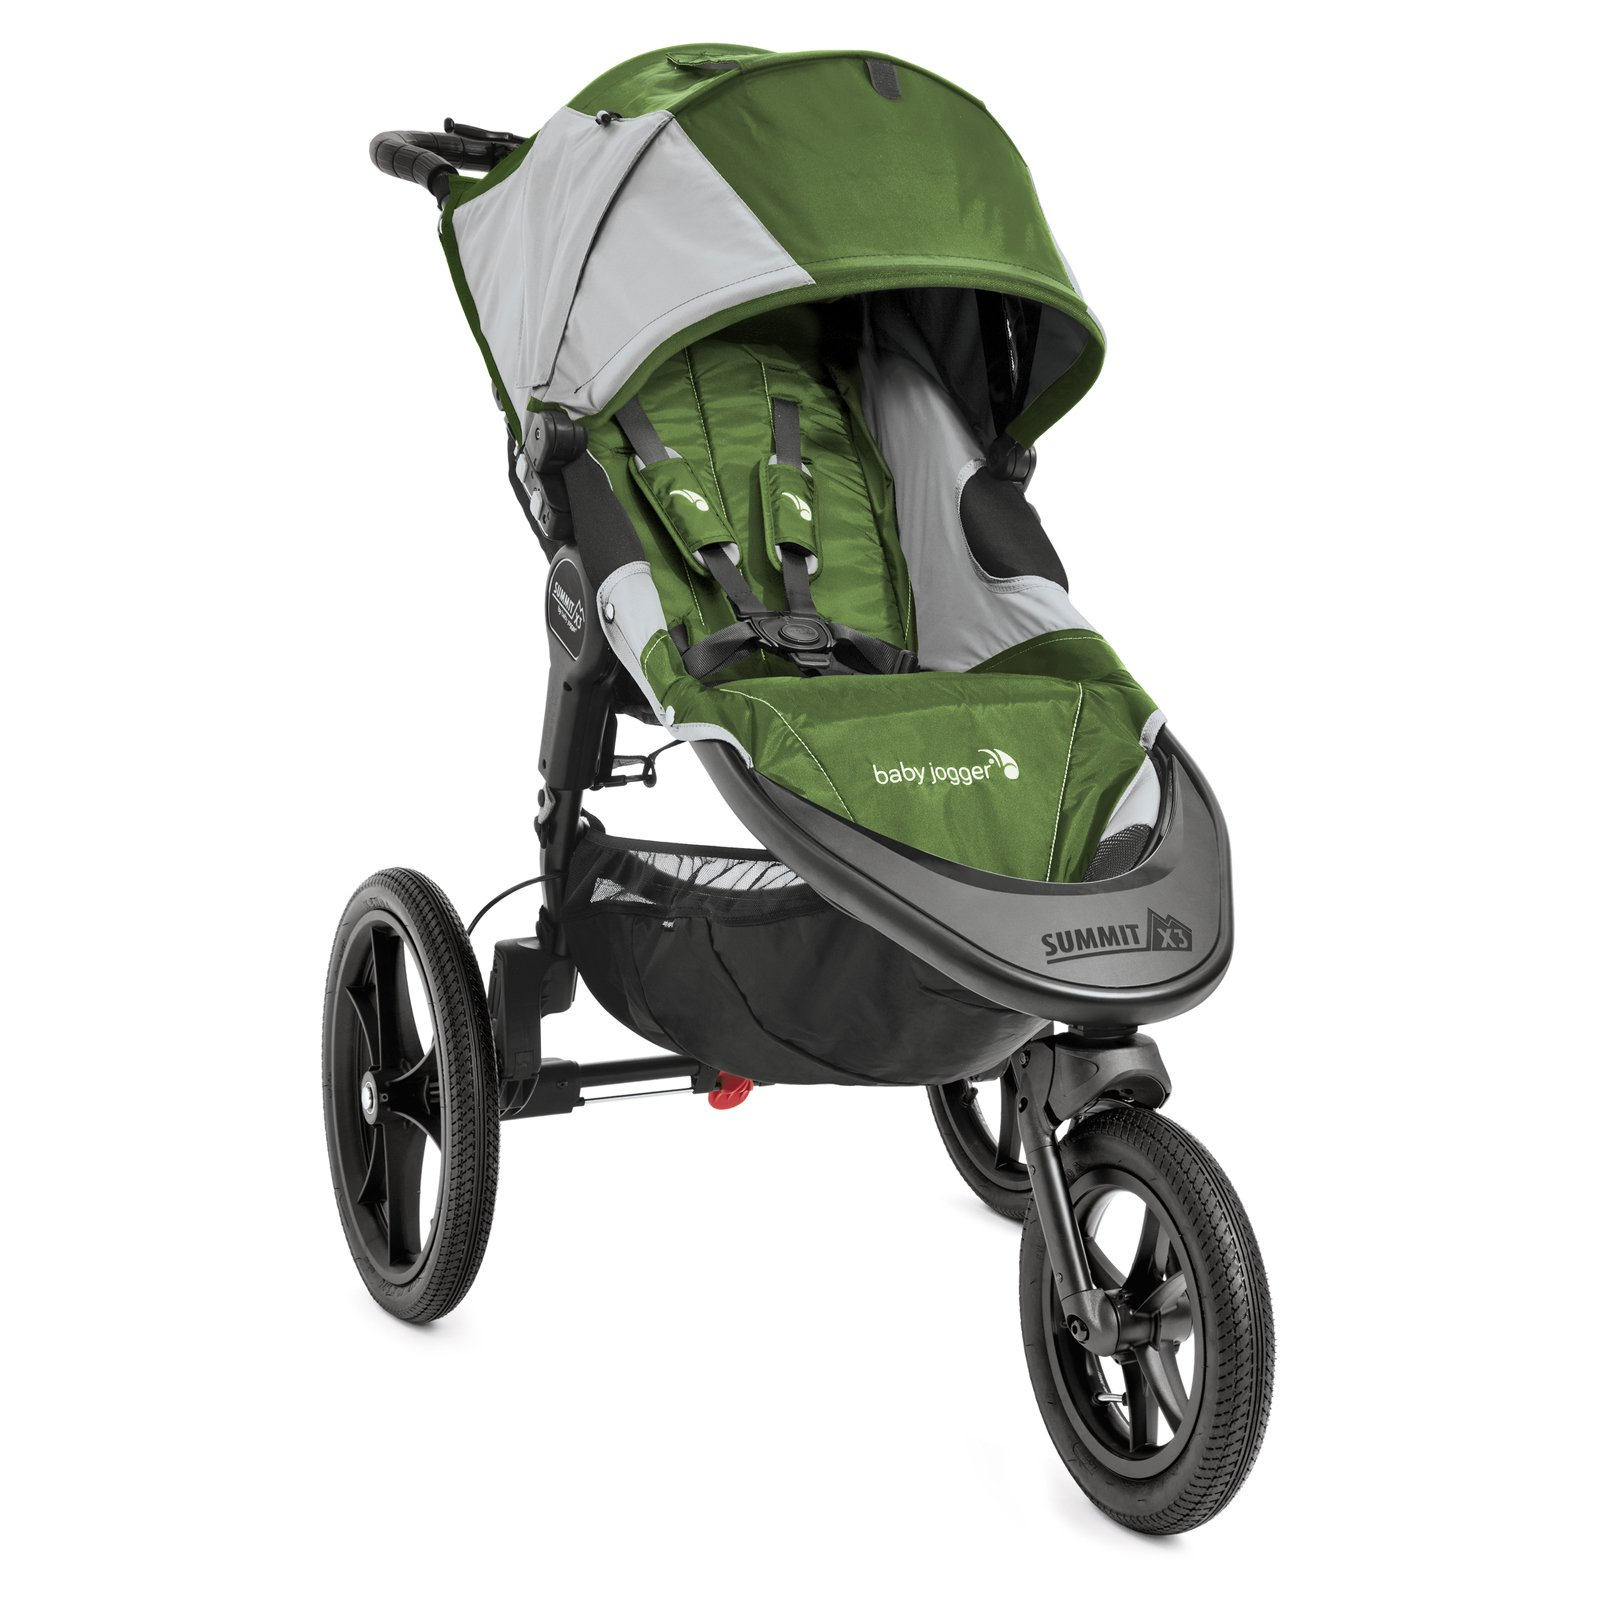 Baby Jogger Summit X3 Single Stroller - Green/Gray